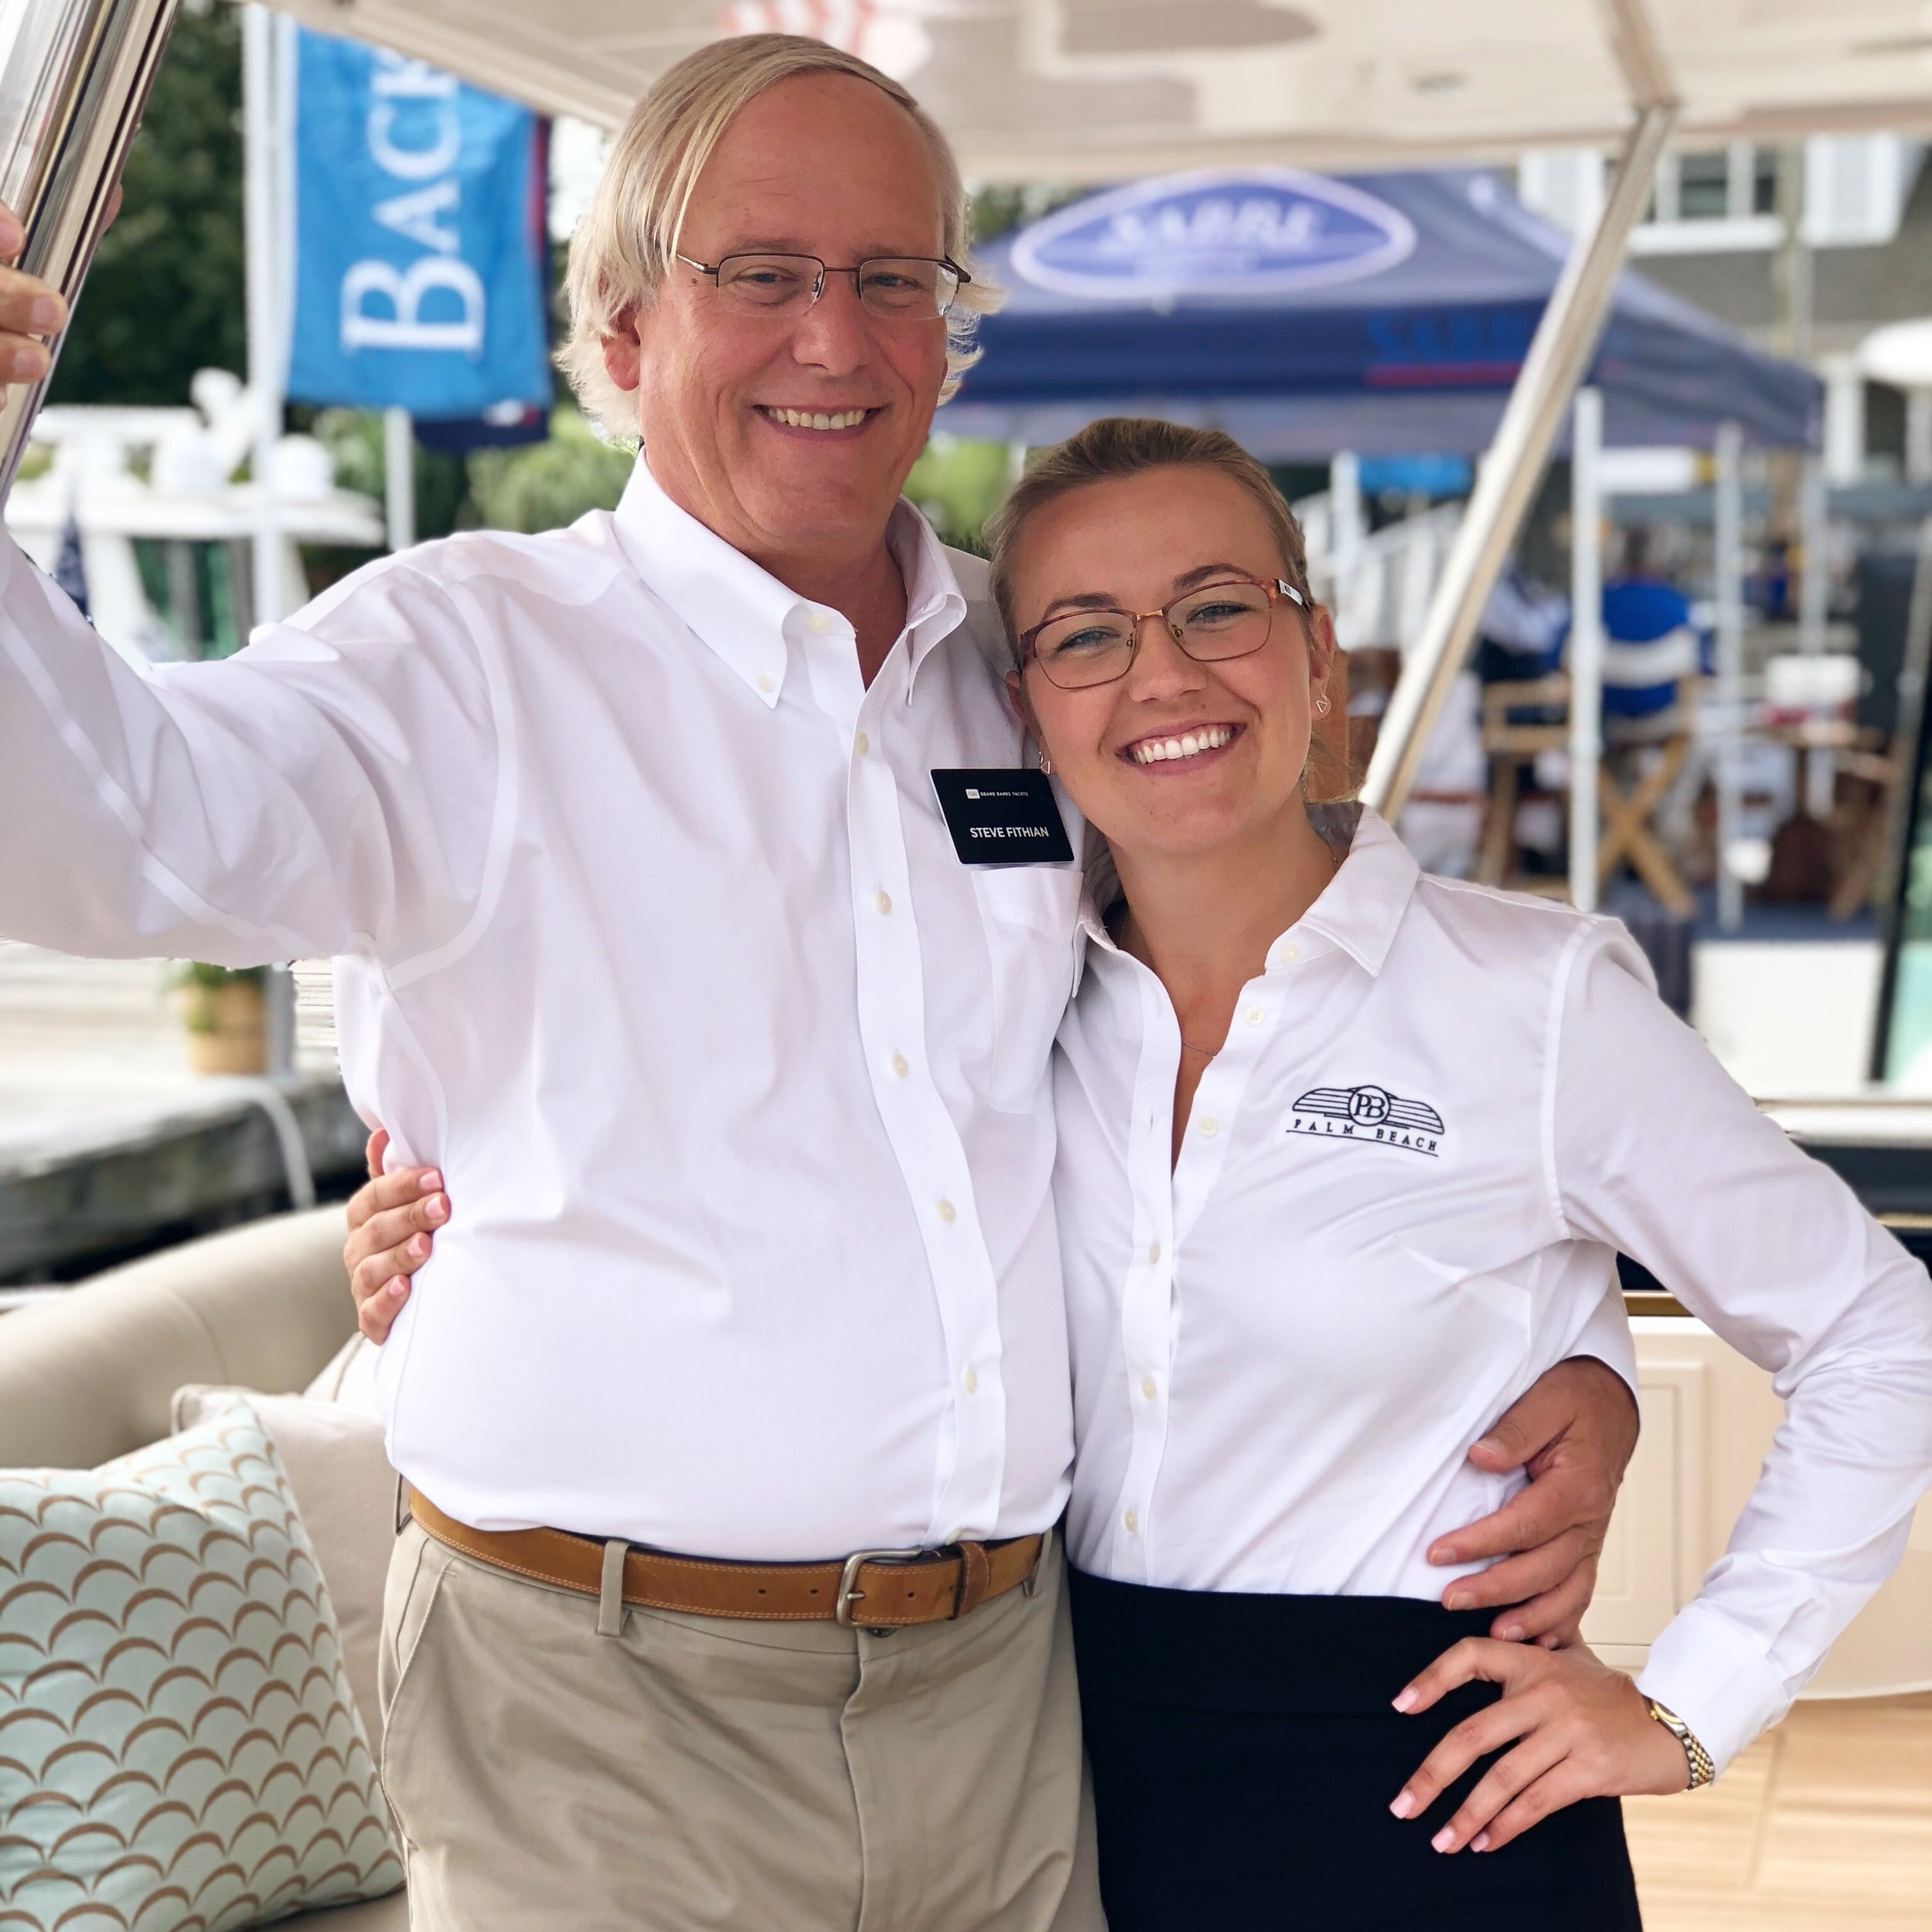 The Fithian Philosophy - Steve and Sara Fithian are committed to providing total customer satisfaction, before during and after the purchase or sale of your yacht. Our purpose is to be your advocate and consultant throughout your ownership experience to ensure the purchase of a fine yacht or the timely sale of your current one. Thirty-five years of experiences backs our knowledge maintained by tried and true, old fashioned integrity and honesty backing our actions. We seek solutions to challenges and action to all questions and requests.